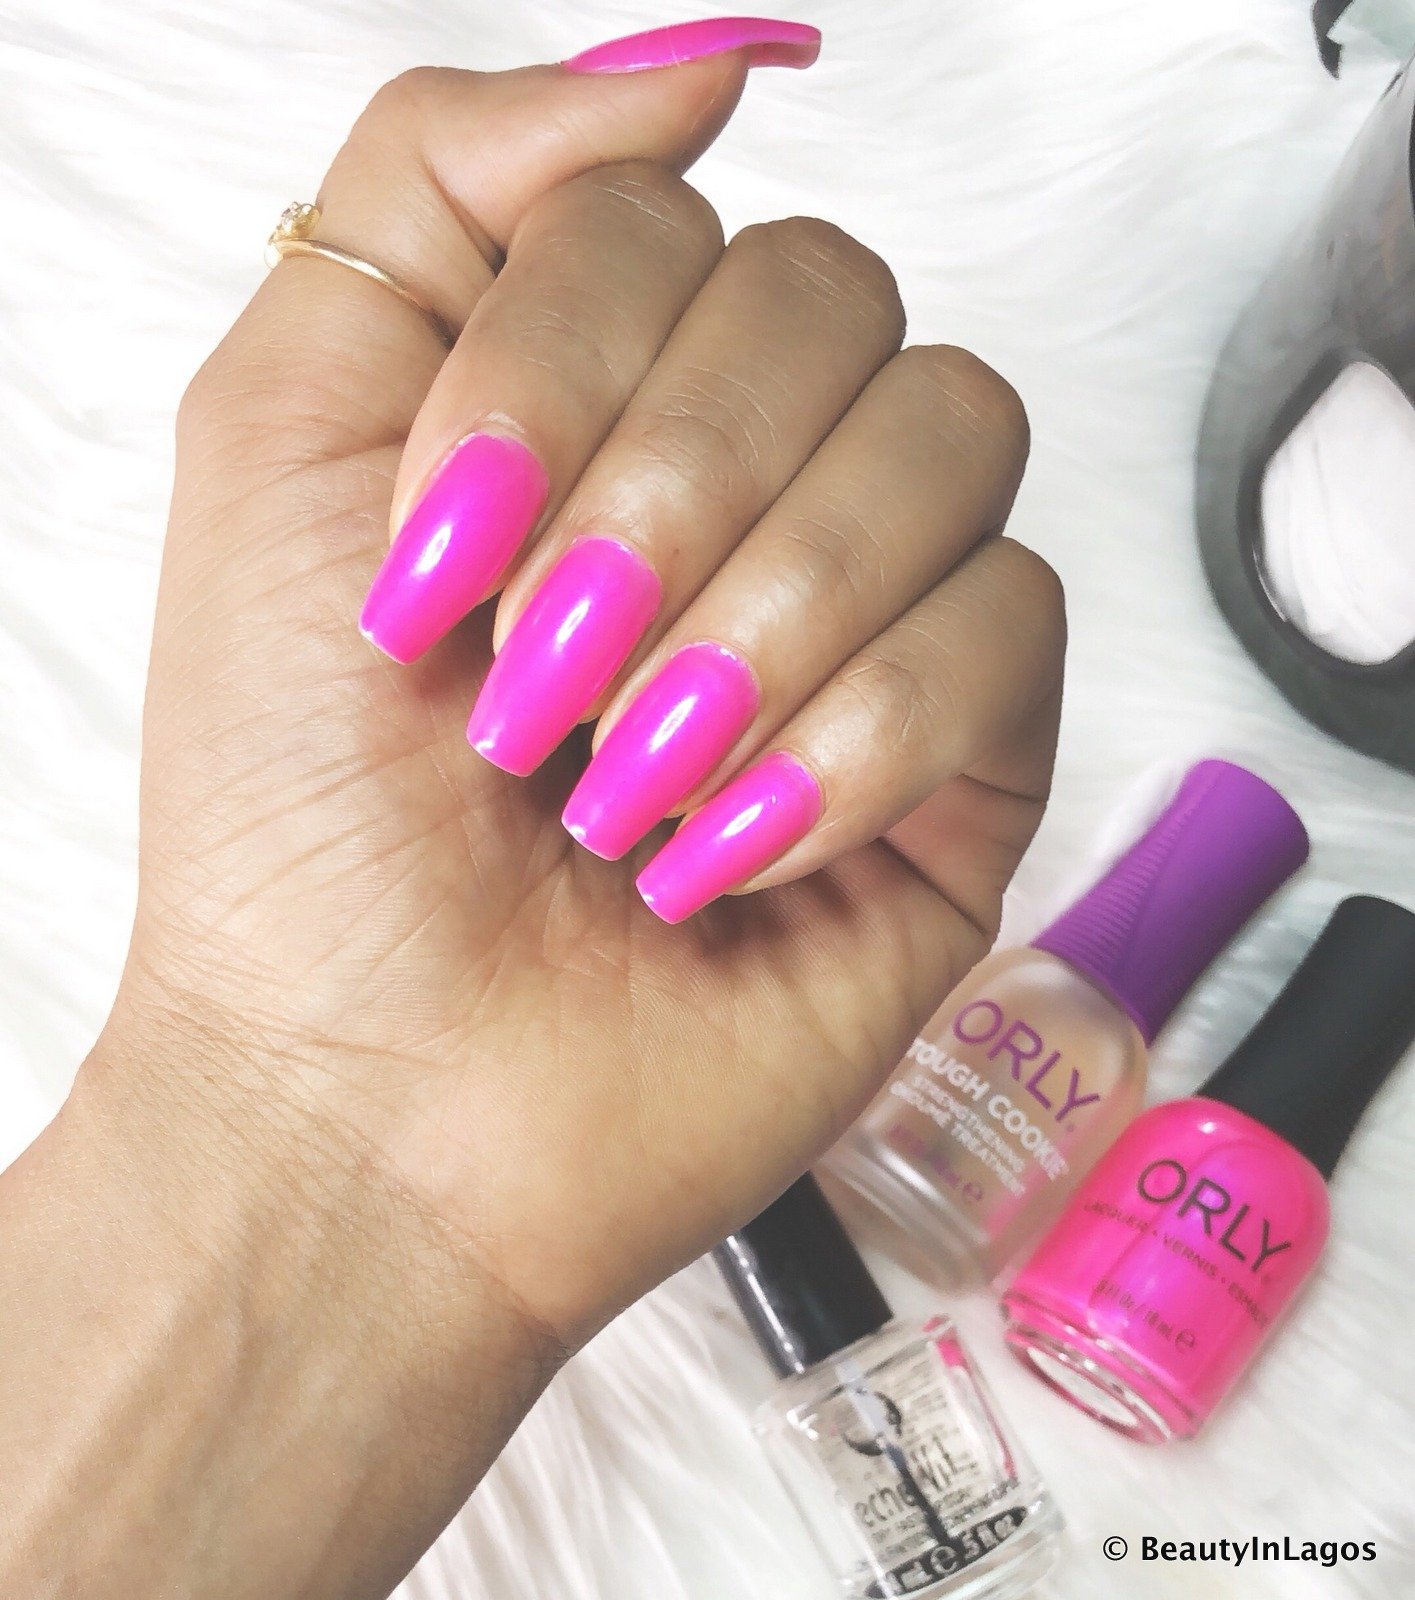 NAIL TIPS: How To Get Your Manicure To Last Longer